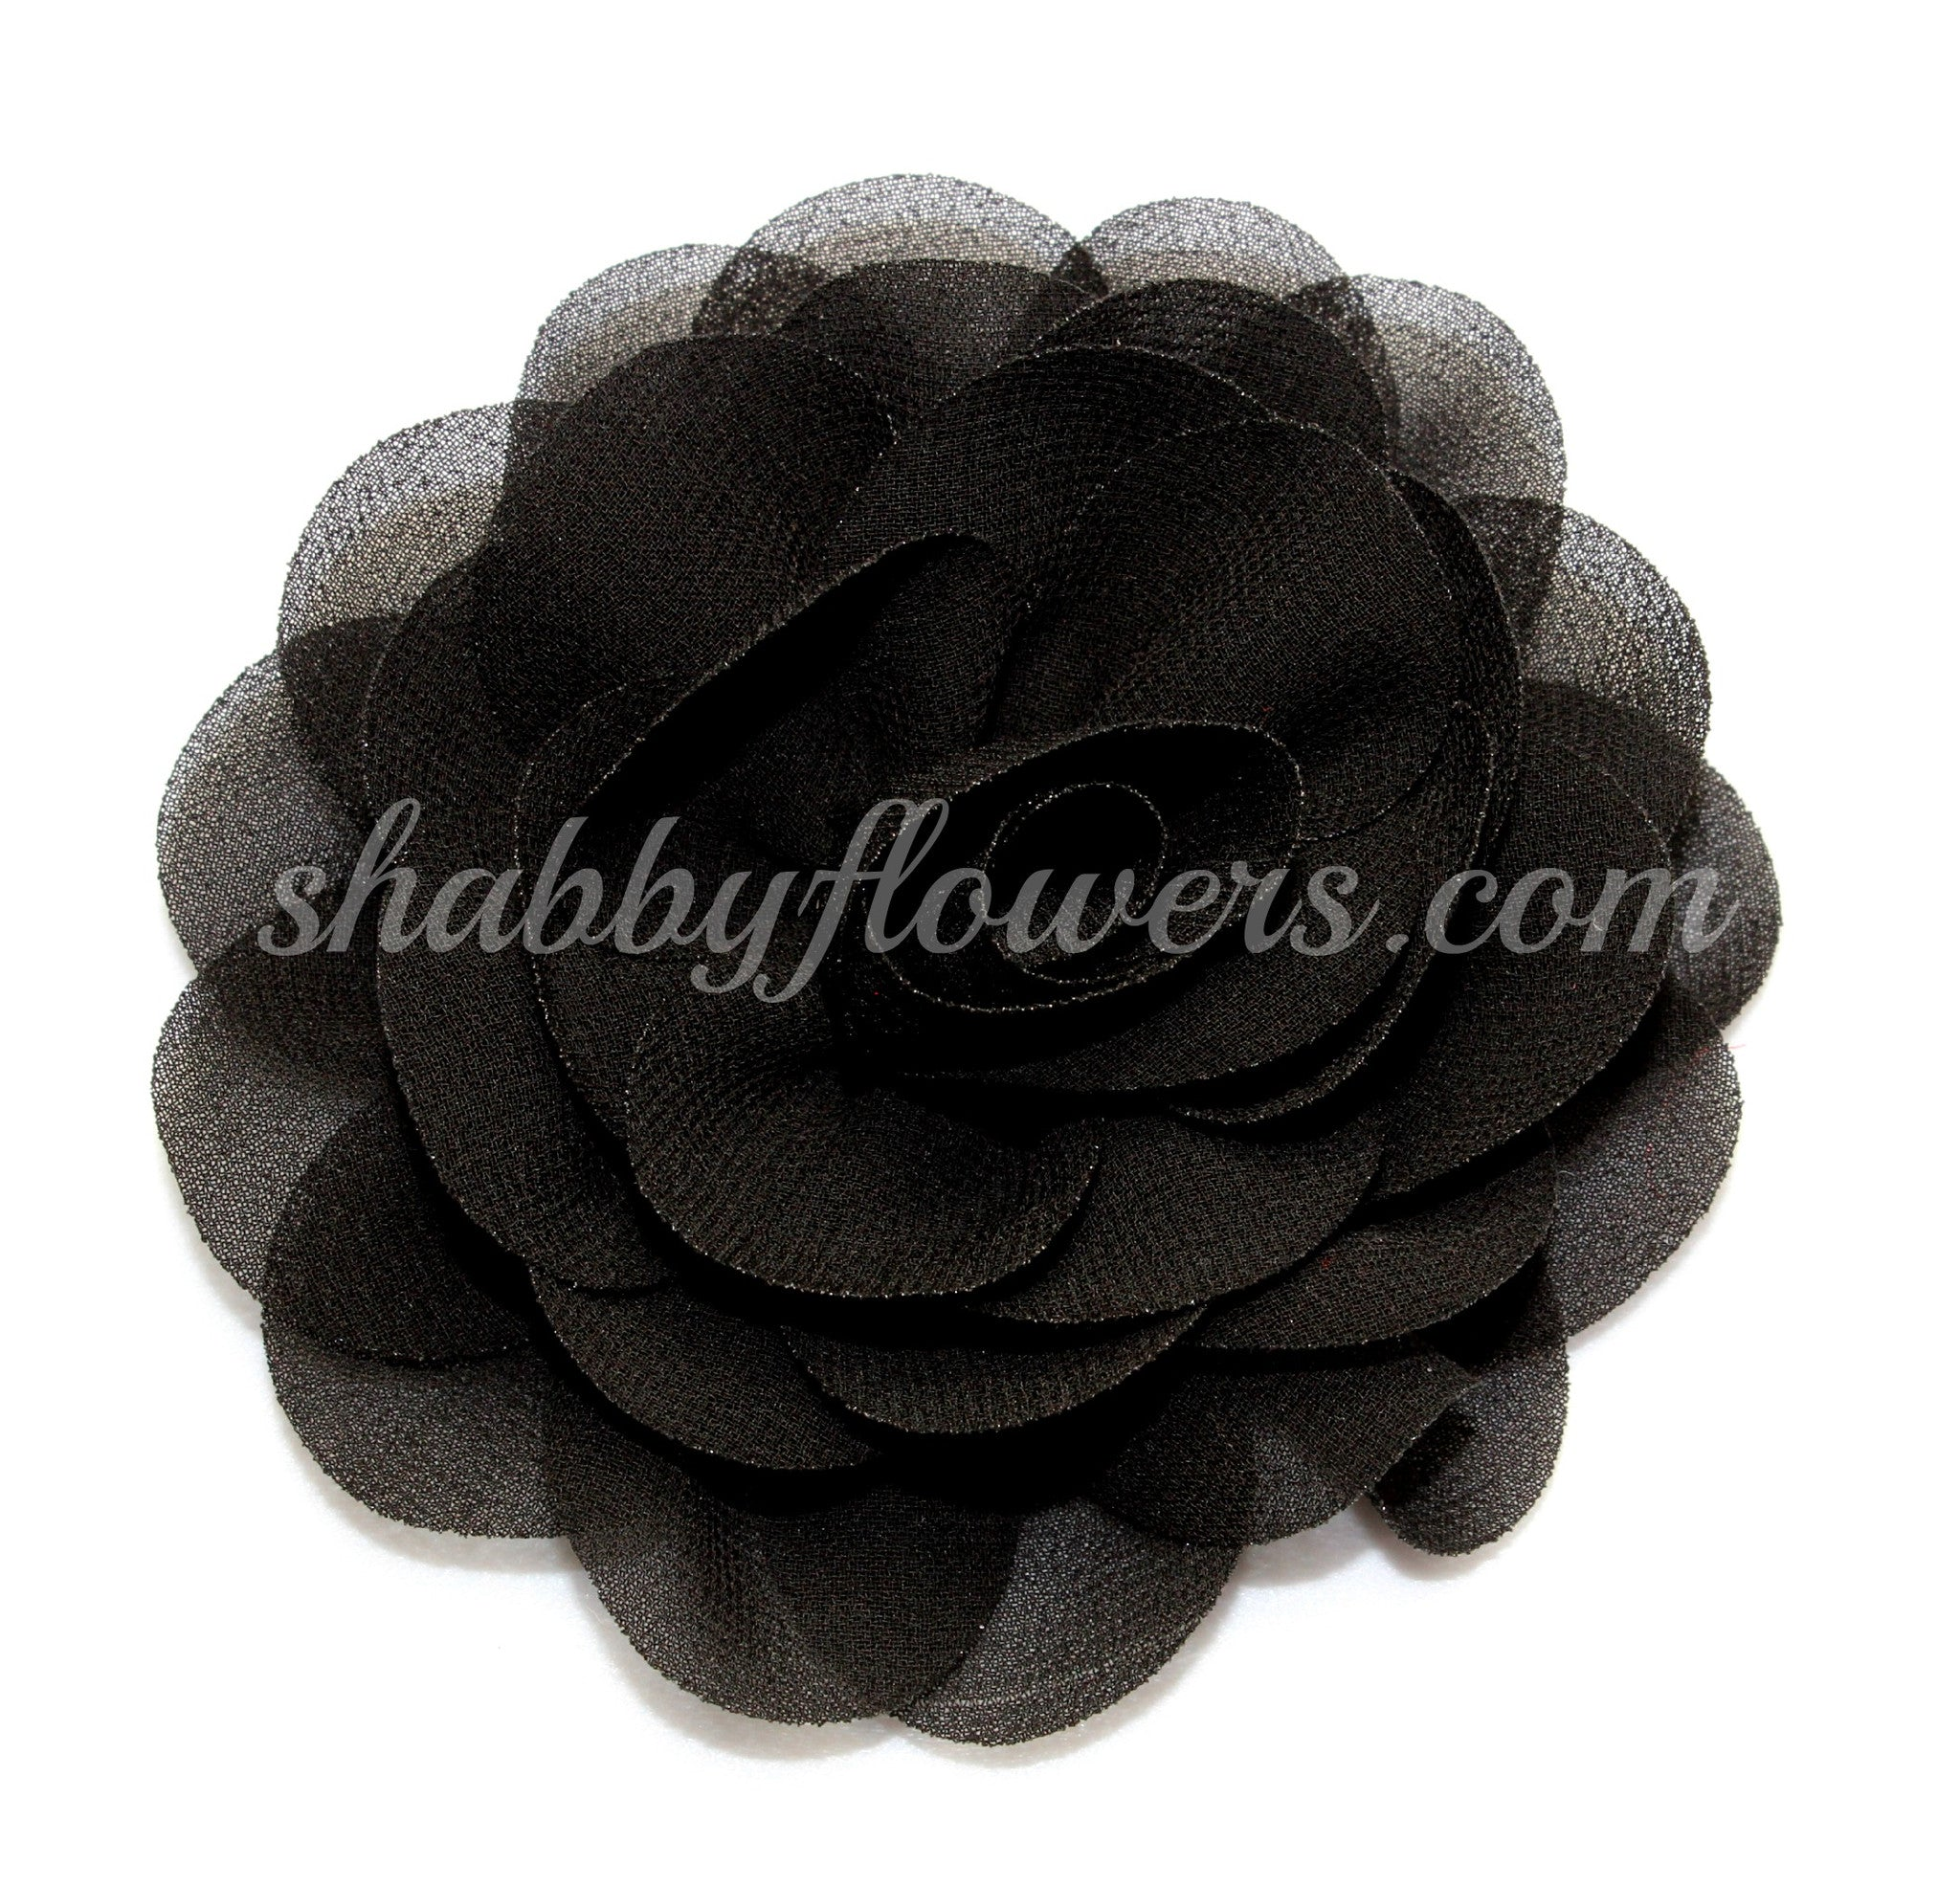 Rose - Black - shabbyflowers.com